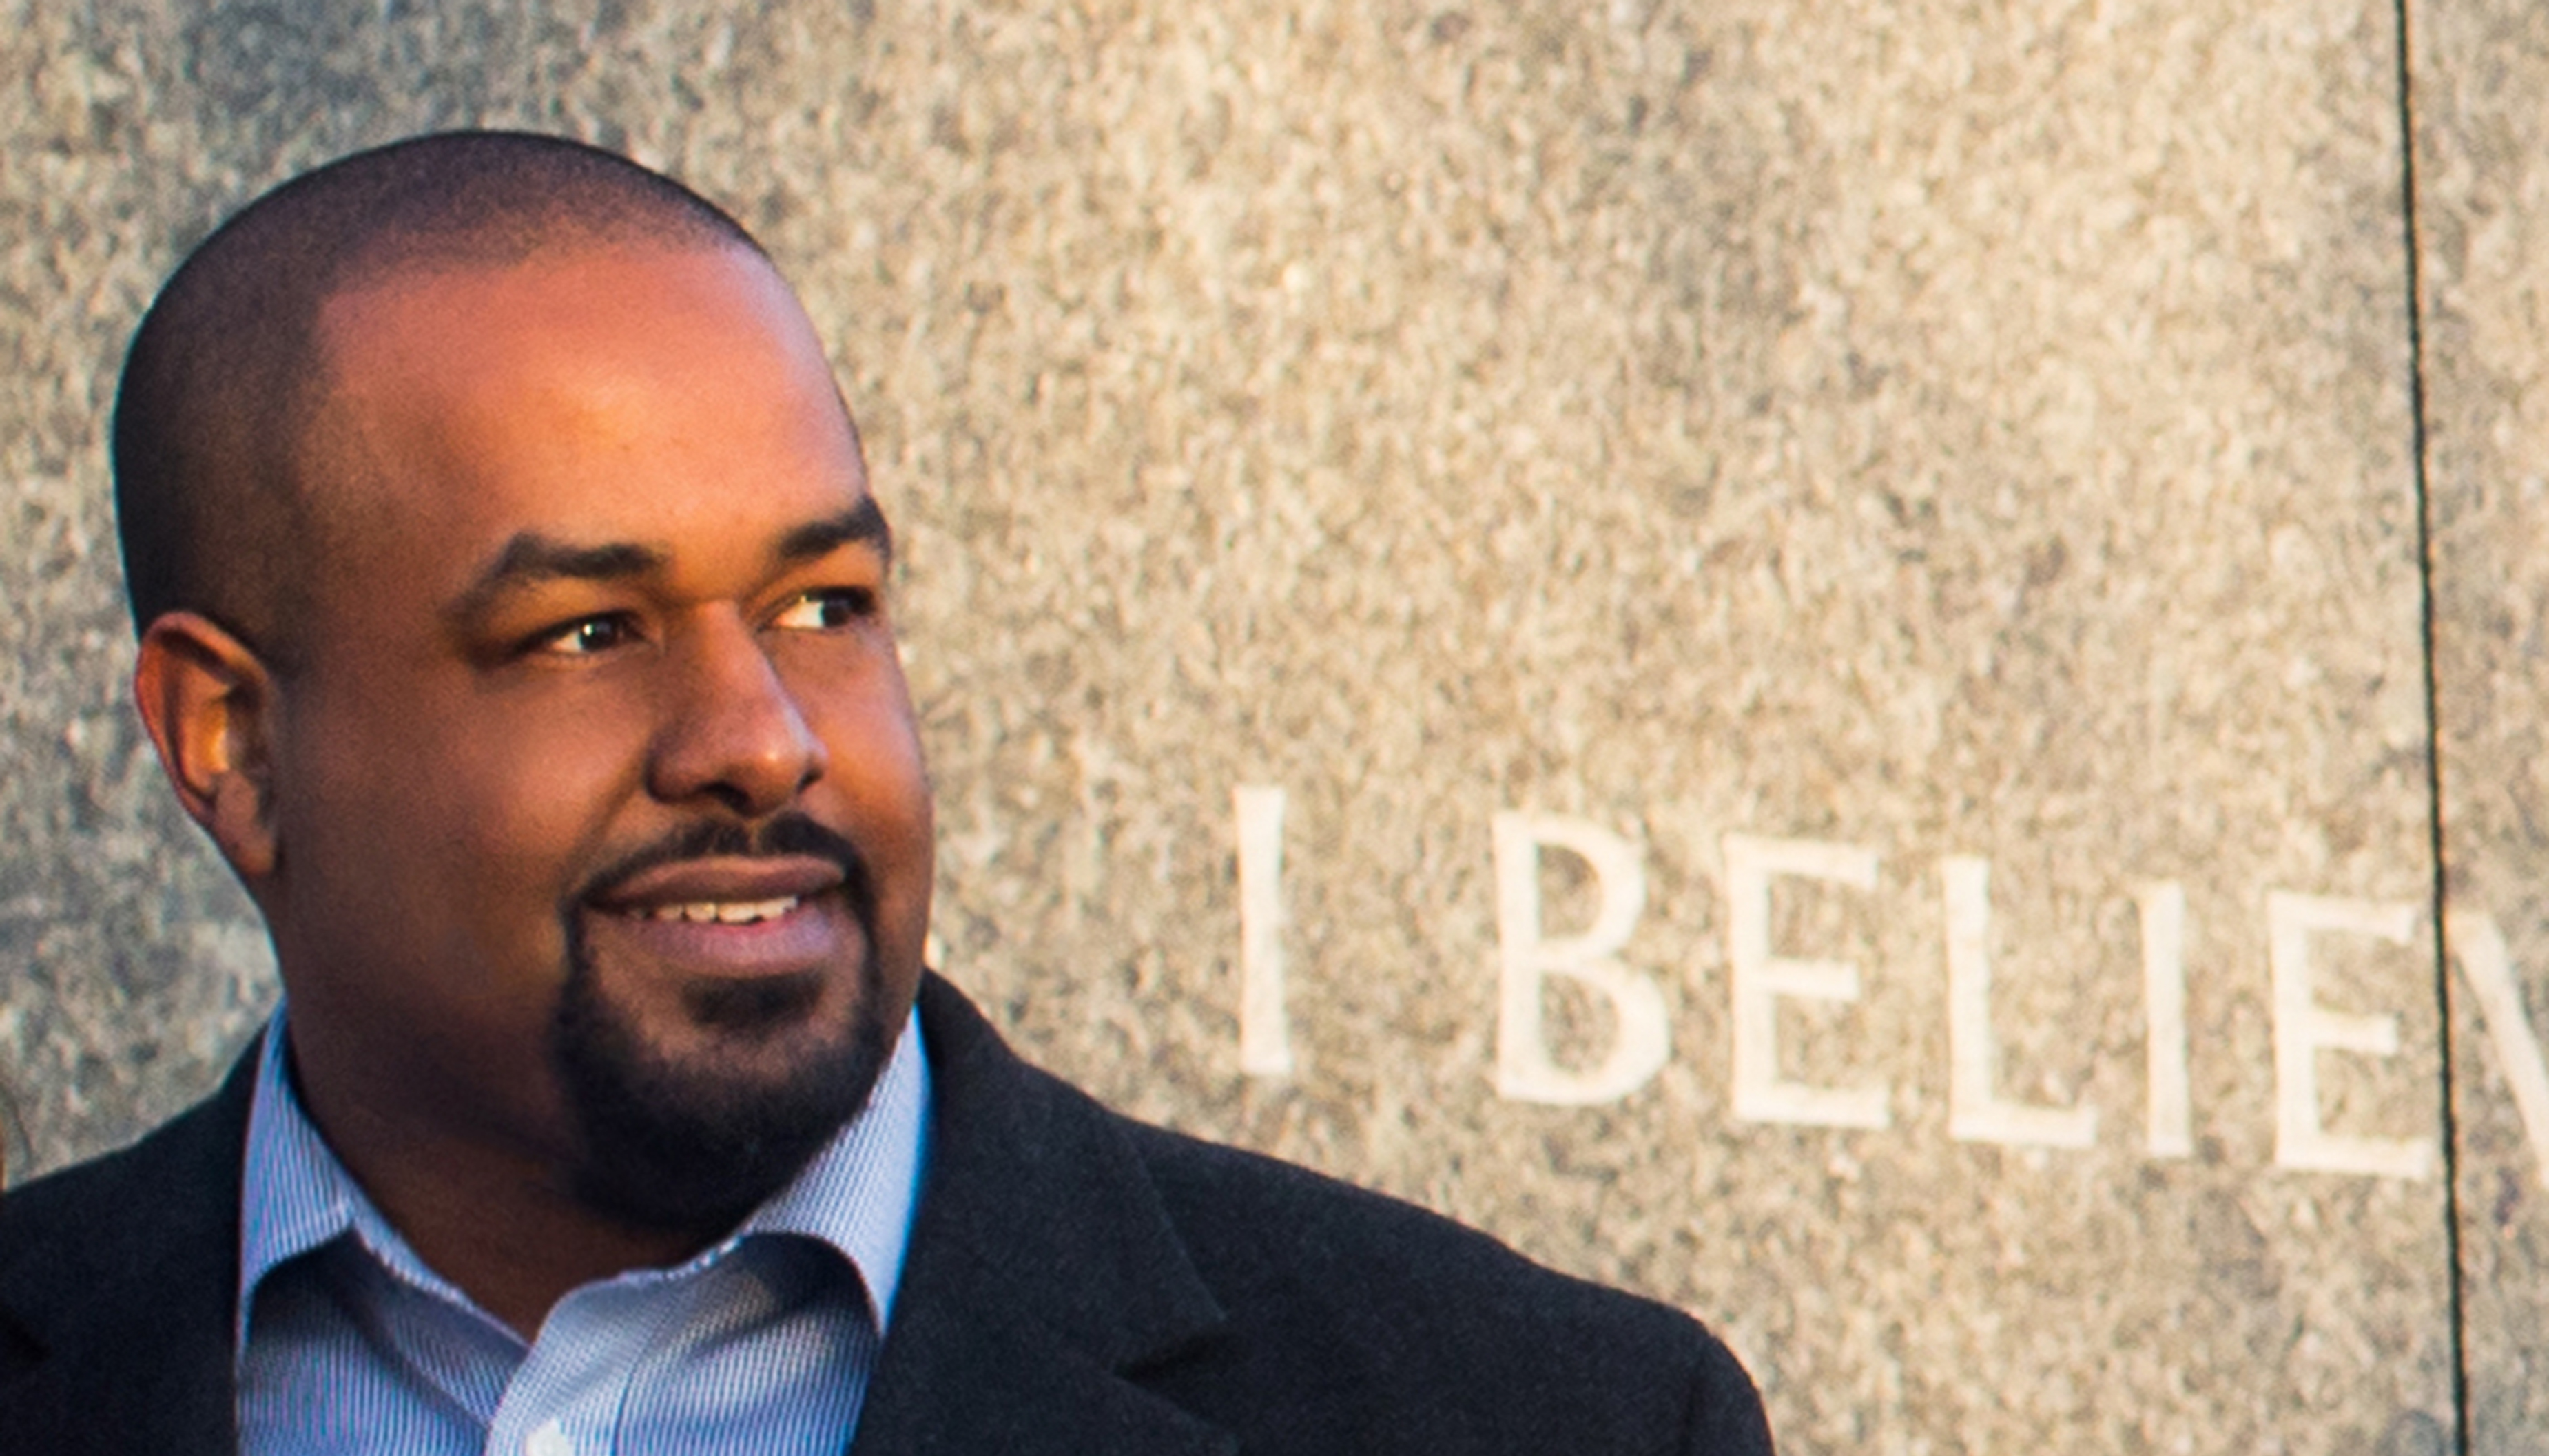 Joshua DuBois, CEO, author, media commentator, and former Obama White House official, will give the parting words of wisdom to the graduating class of December 2019 during his keynote address at the Commencement Ceremony.